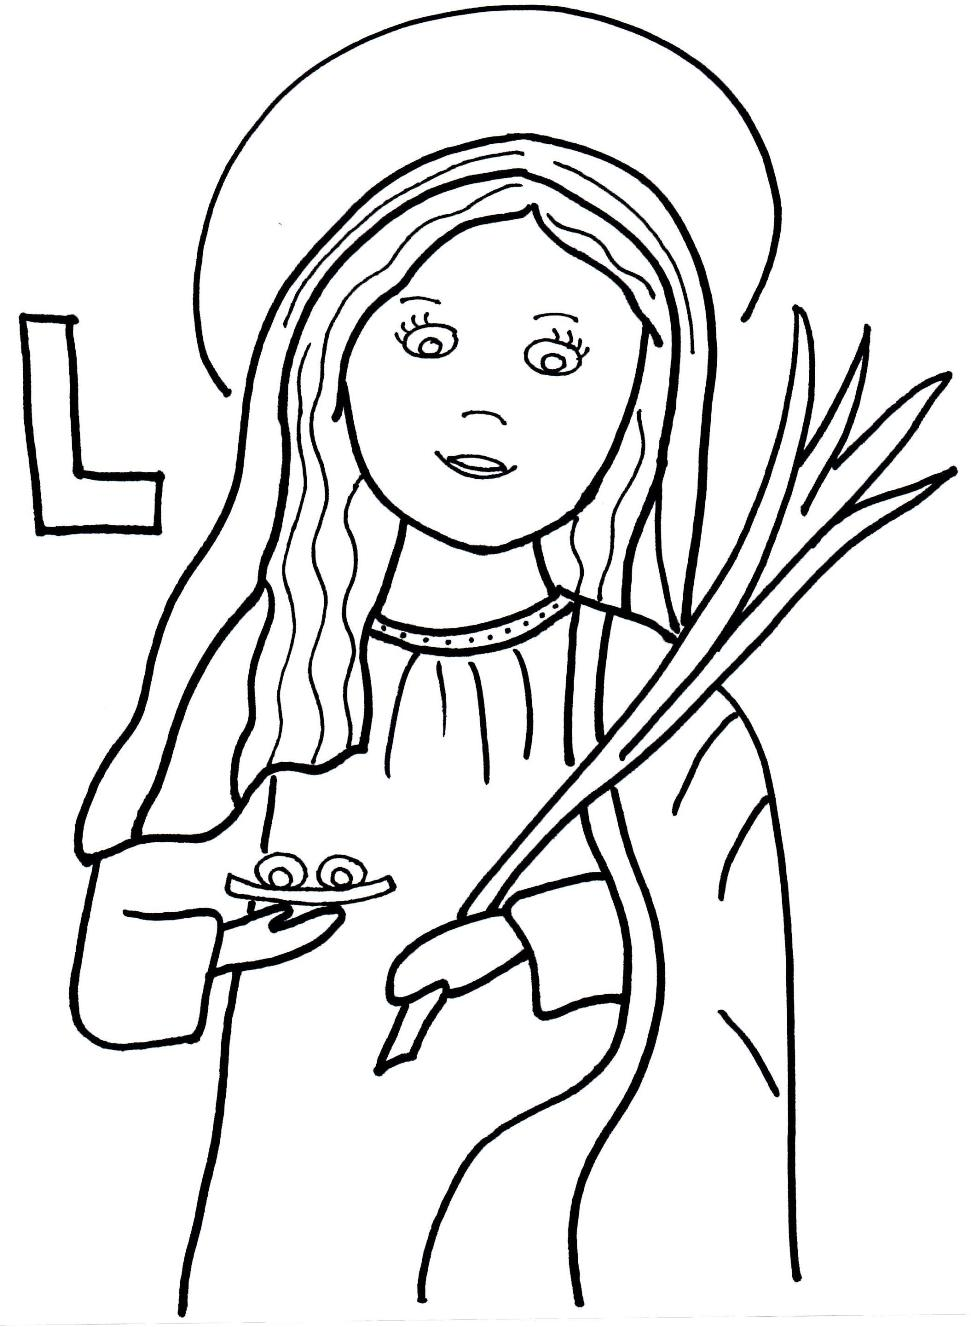 coloring saints pages for kids - photo#14